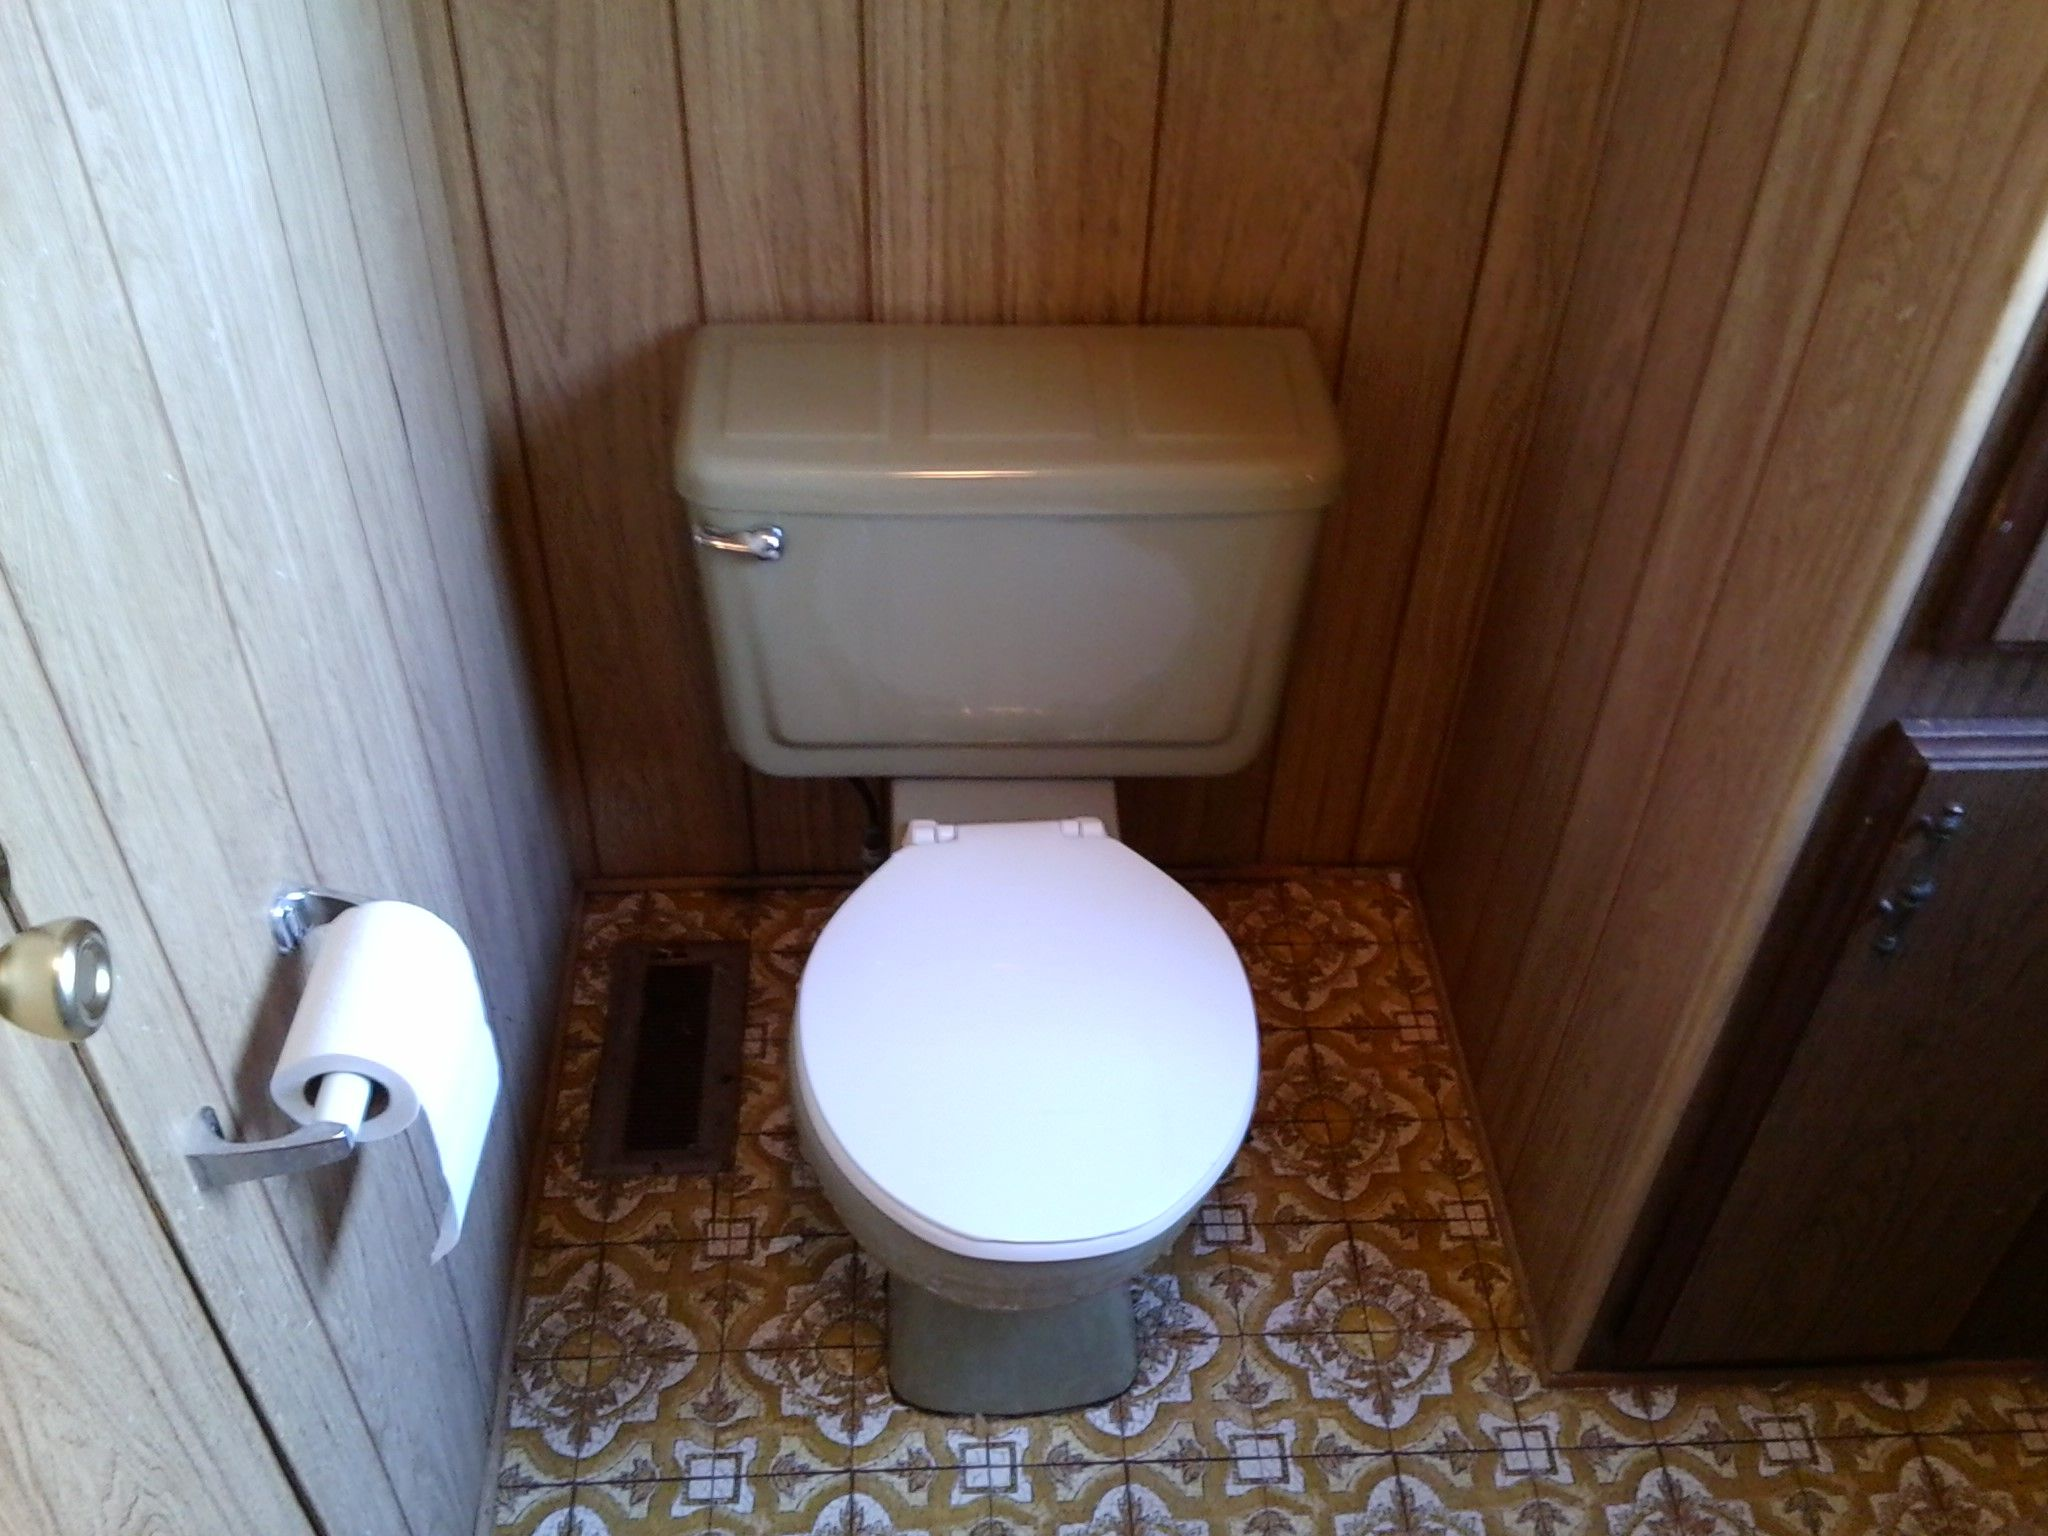 Remodeling a small bathroom in an old mobile home ...